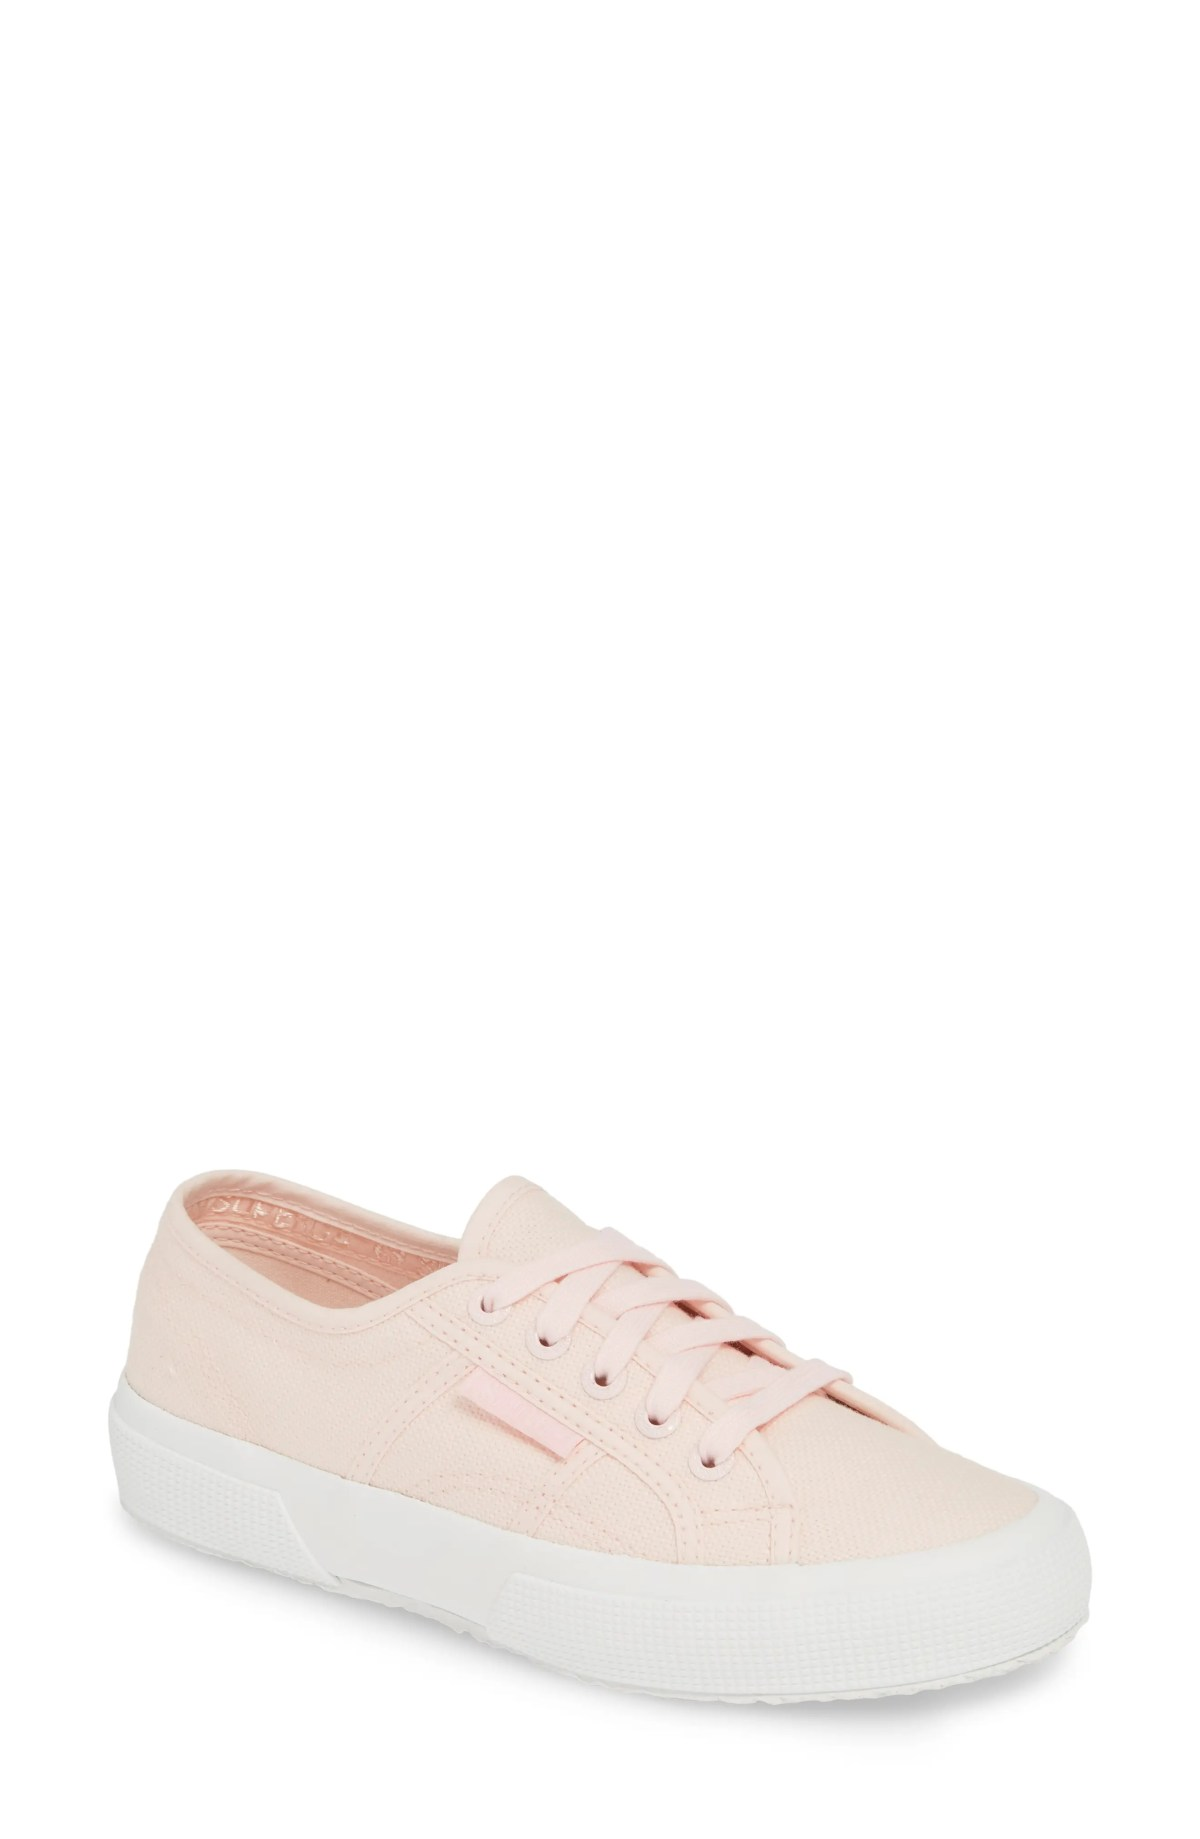 SUPERGA 'Cotu' Sneaker, Main, color, PINK CRYSTAL